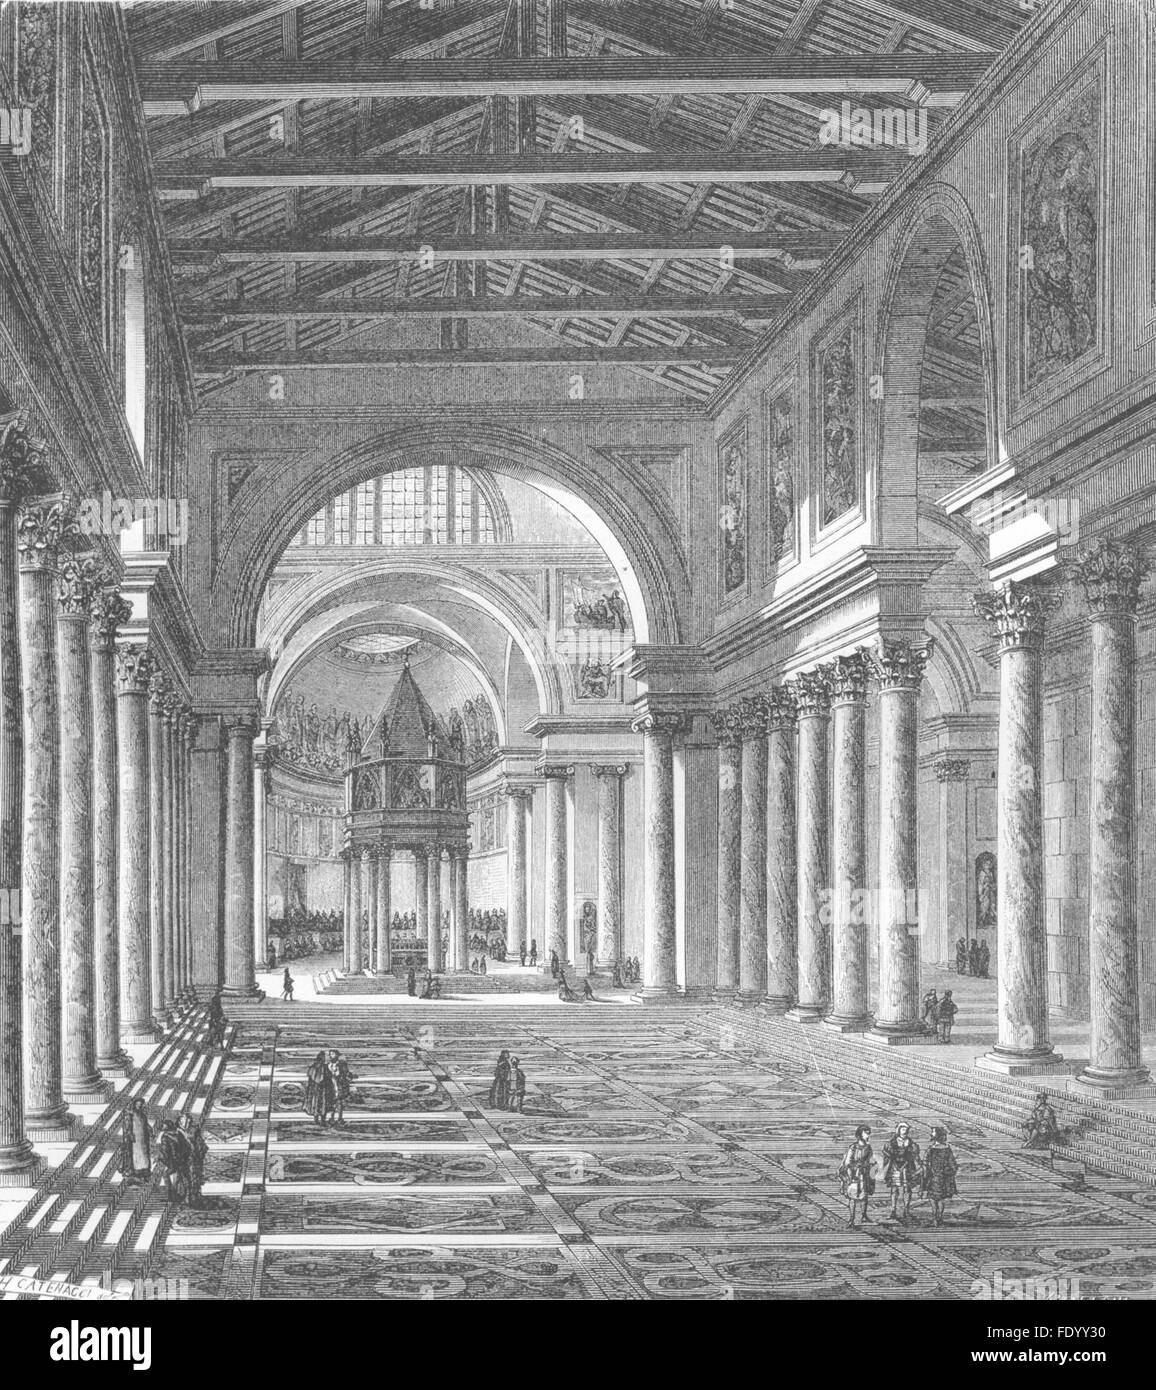 ROME: Constantinian Basilica of St Peter's, antique print 1872 Stock Photo